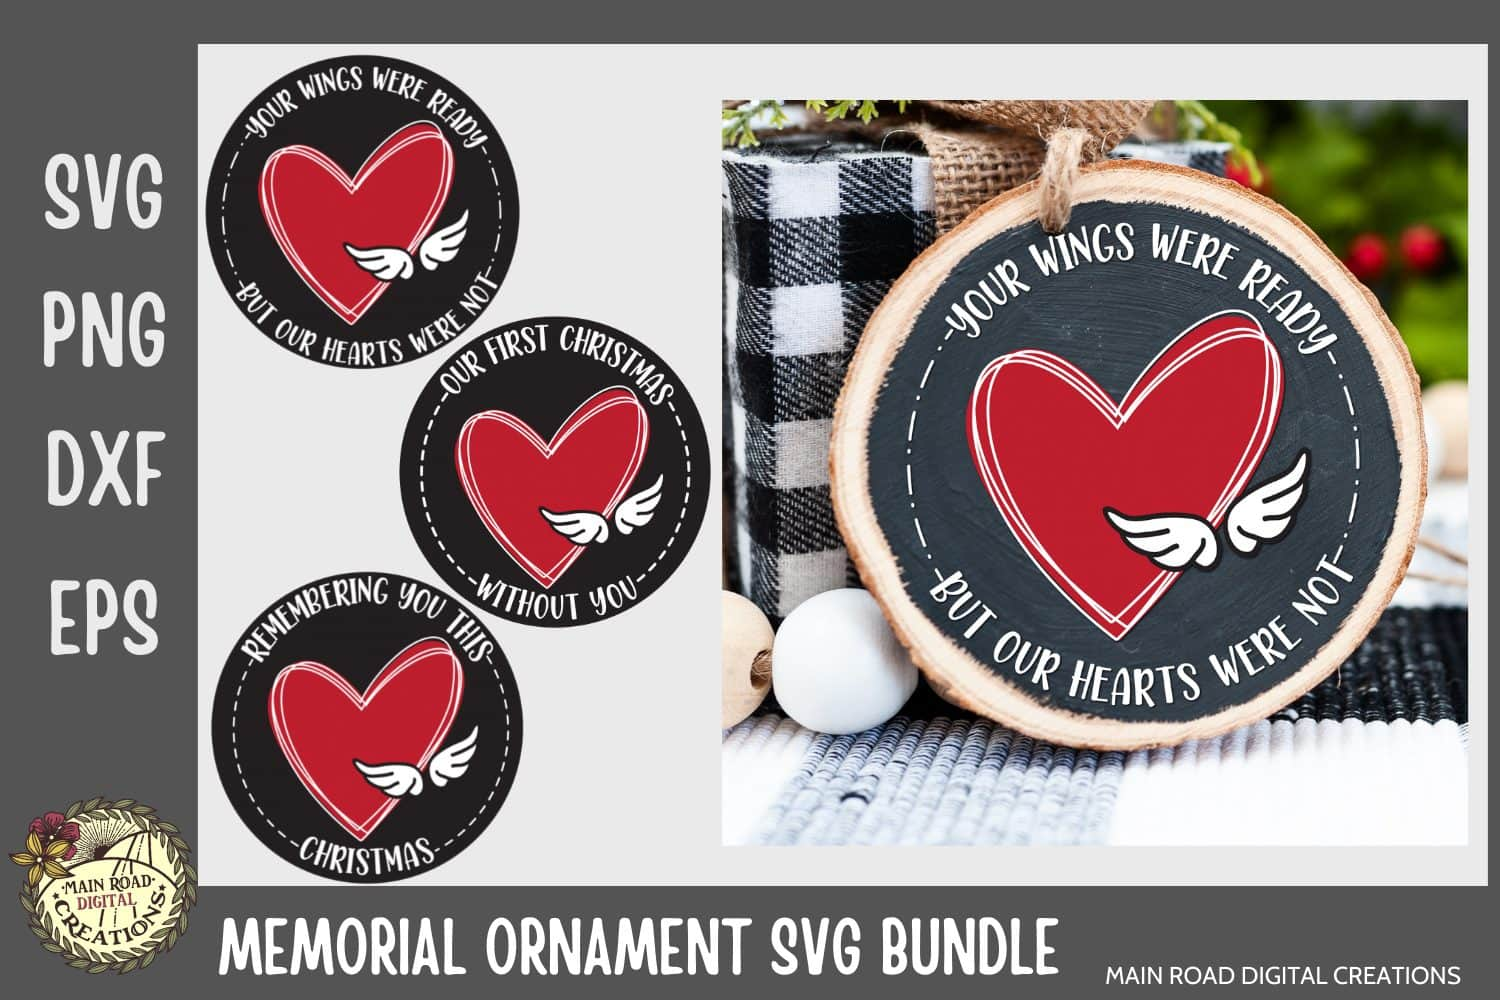 Christmas ornament designs, Christmas SVG, memorial ornament idea, your wings were ready svg, wings svg, ornament for first christmas without a loved one, memorial design, remembering you at Christmas, grief quote, etsy shop